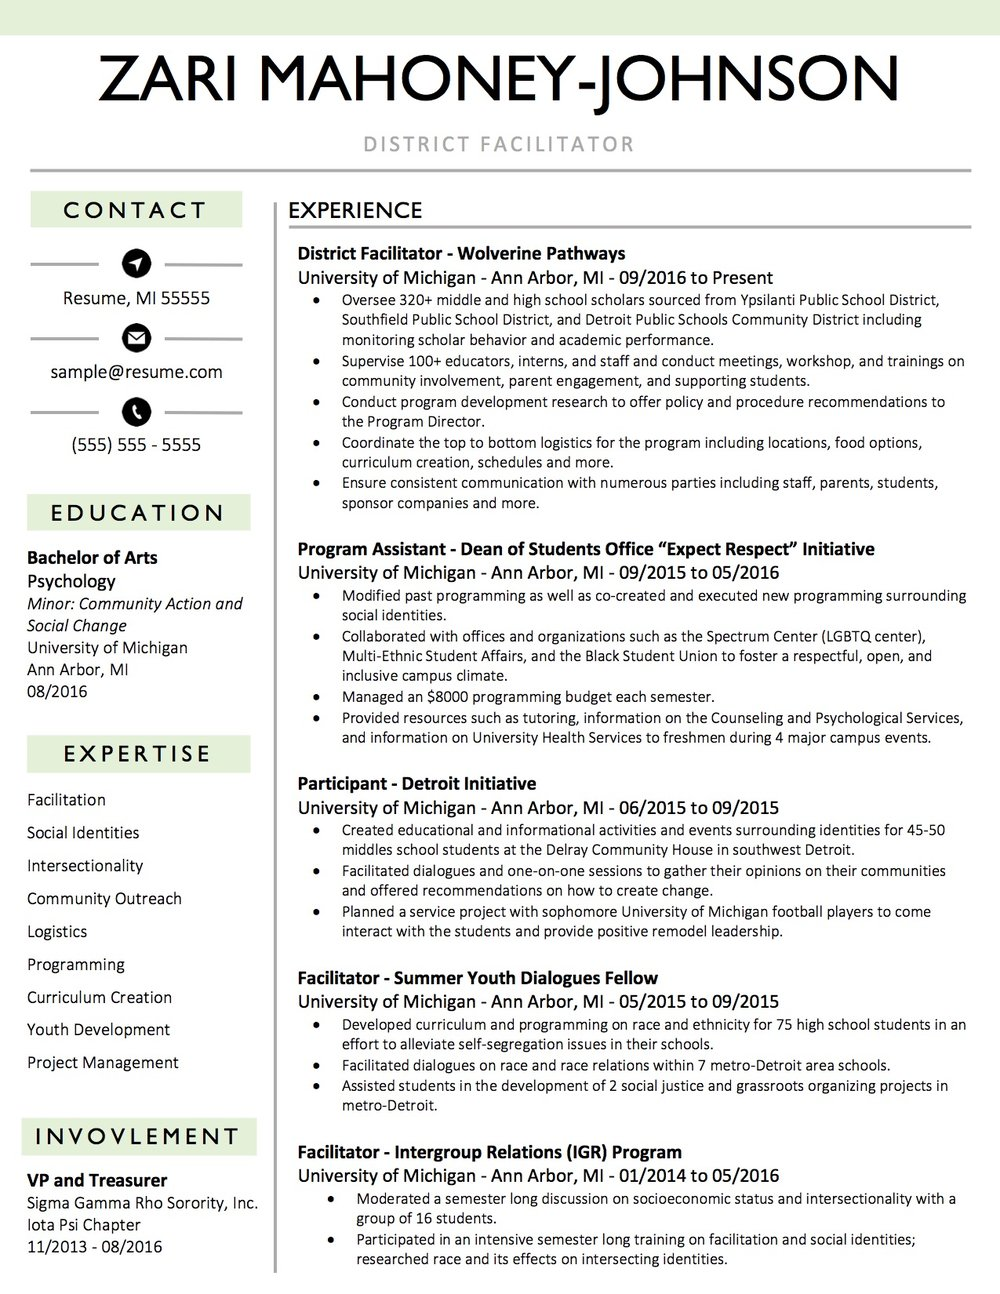 Client Resume #18. Click to Enlarge.